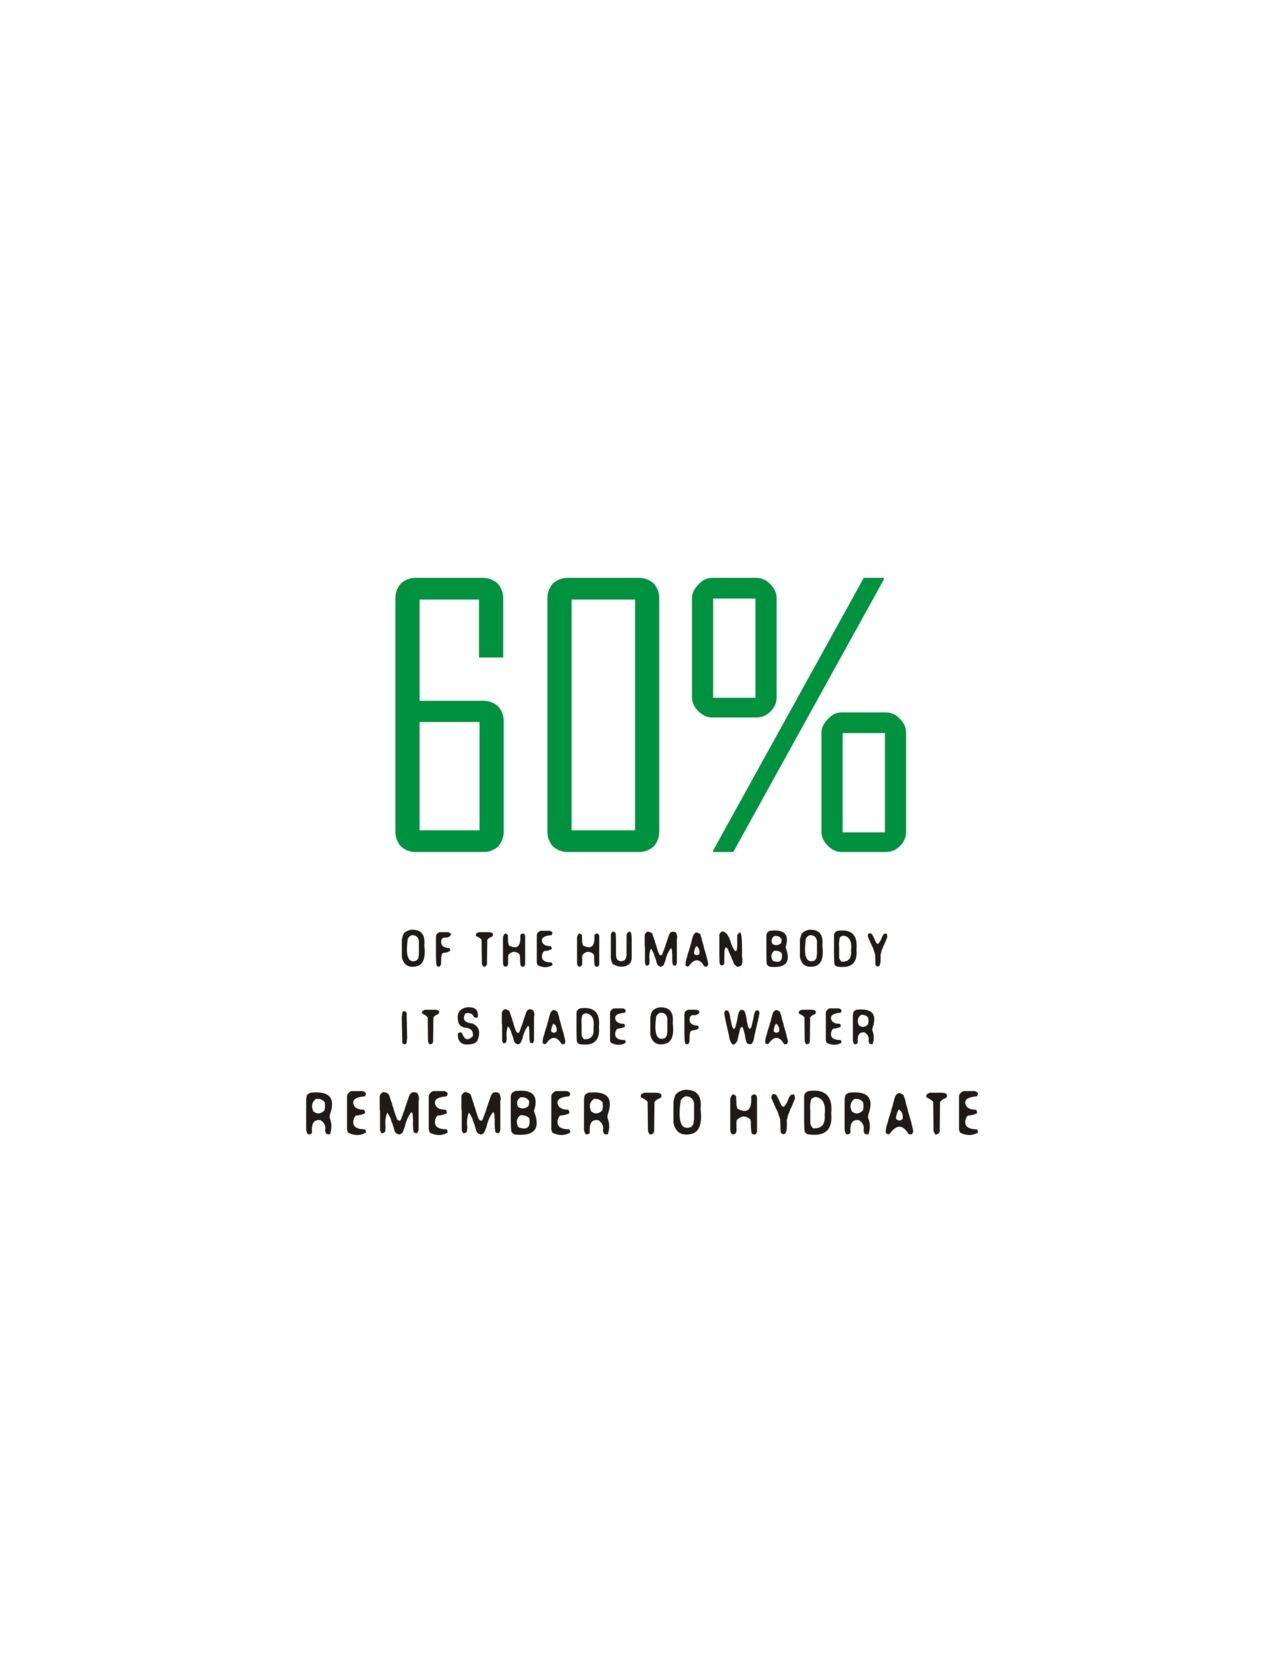 Drink more water, hydrate for your skin and so many